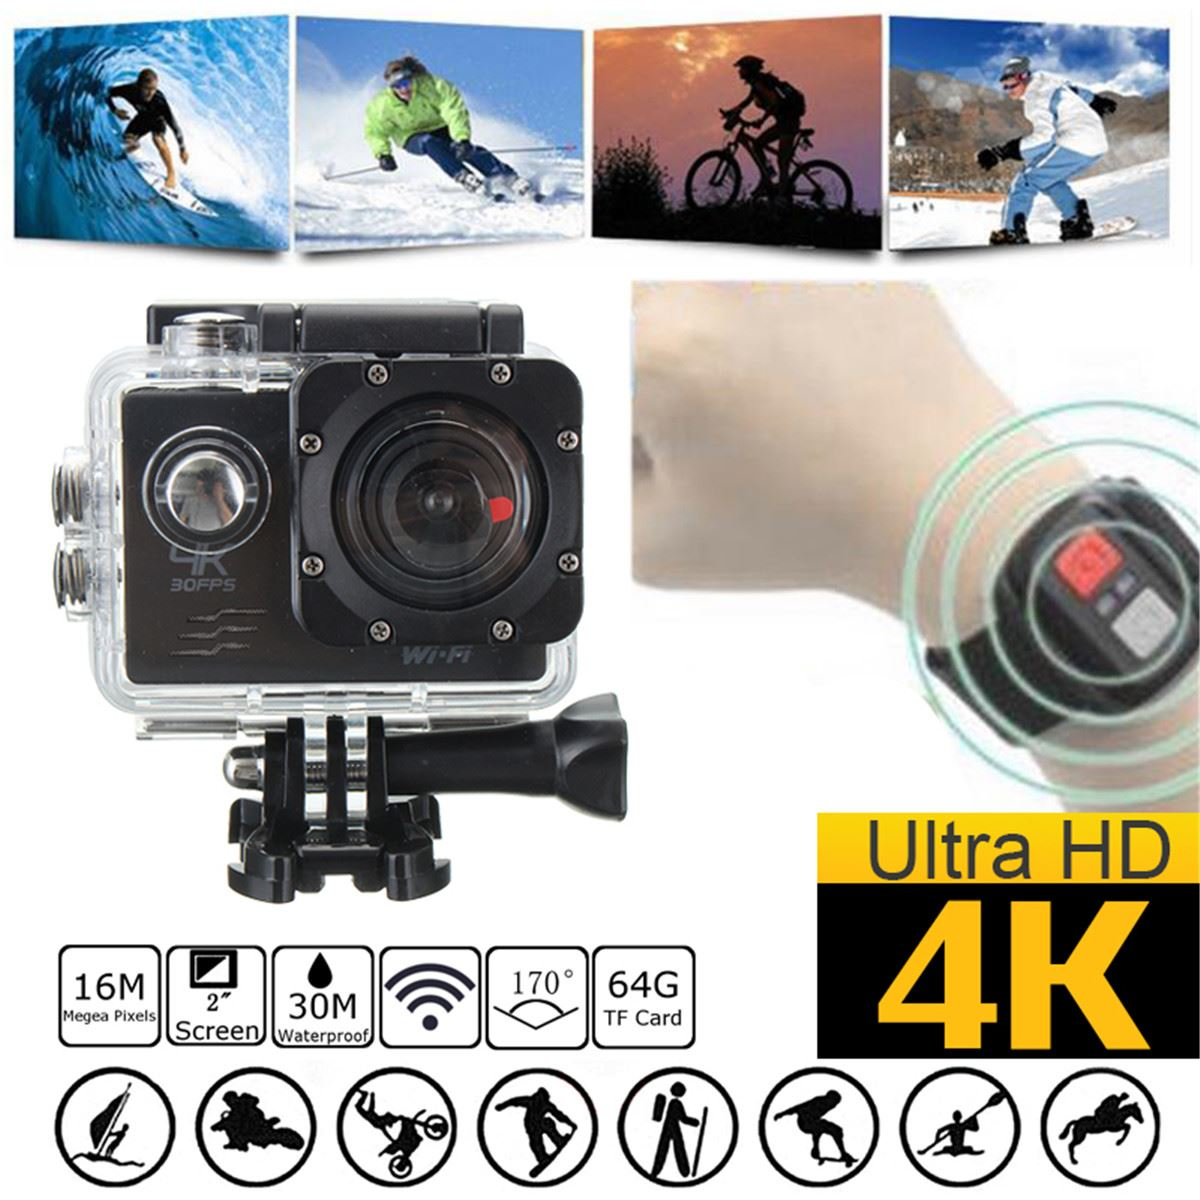 4K WiFi 2 Inch SJ8000R 1080P Full HD Sport DV Action Camera 170 Degree Wide Angle Underwater Waterproof with Remote Control pvt 898 5g 2 4g car wifi display dongle receiver airplay mirroring miracast dlna airsharing full hd 1080p hdmi tv sticks 3251